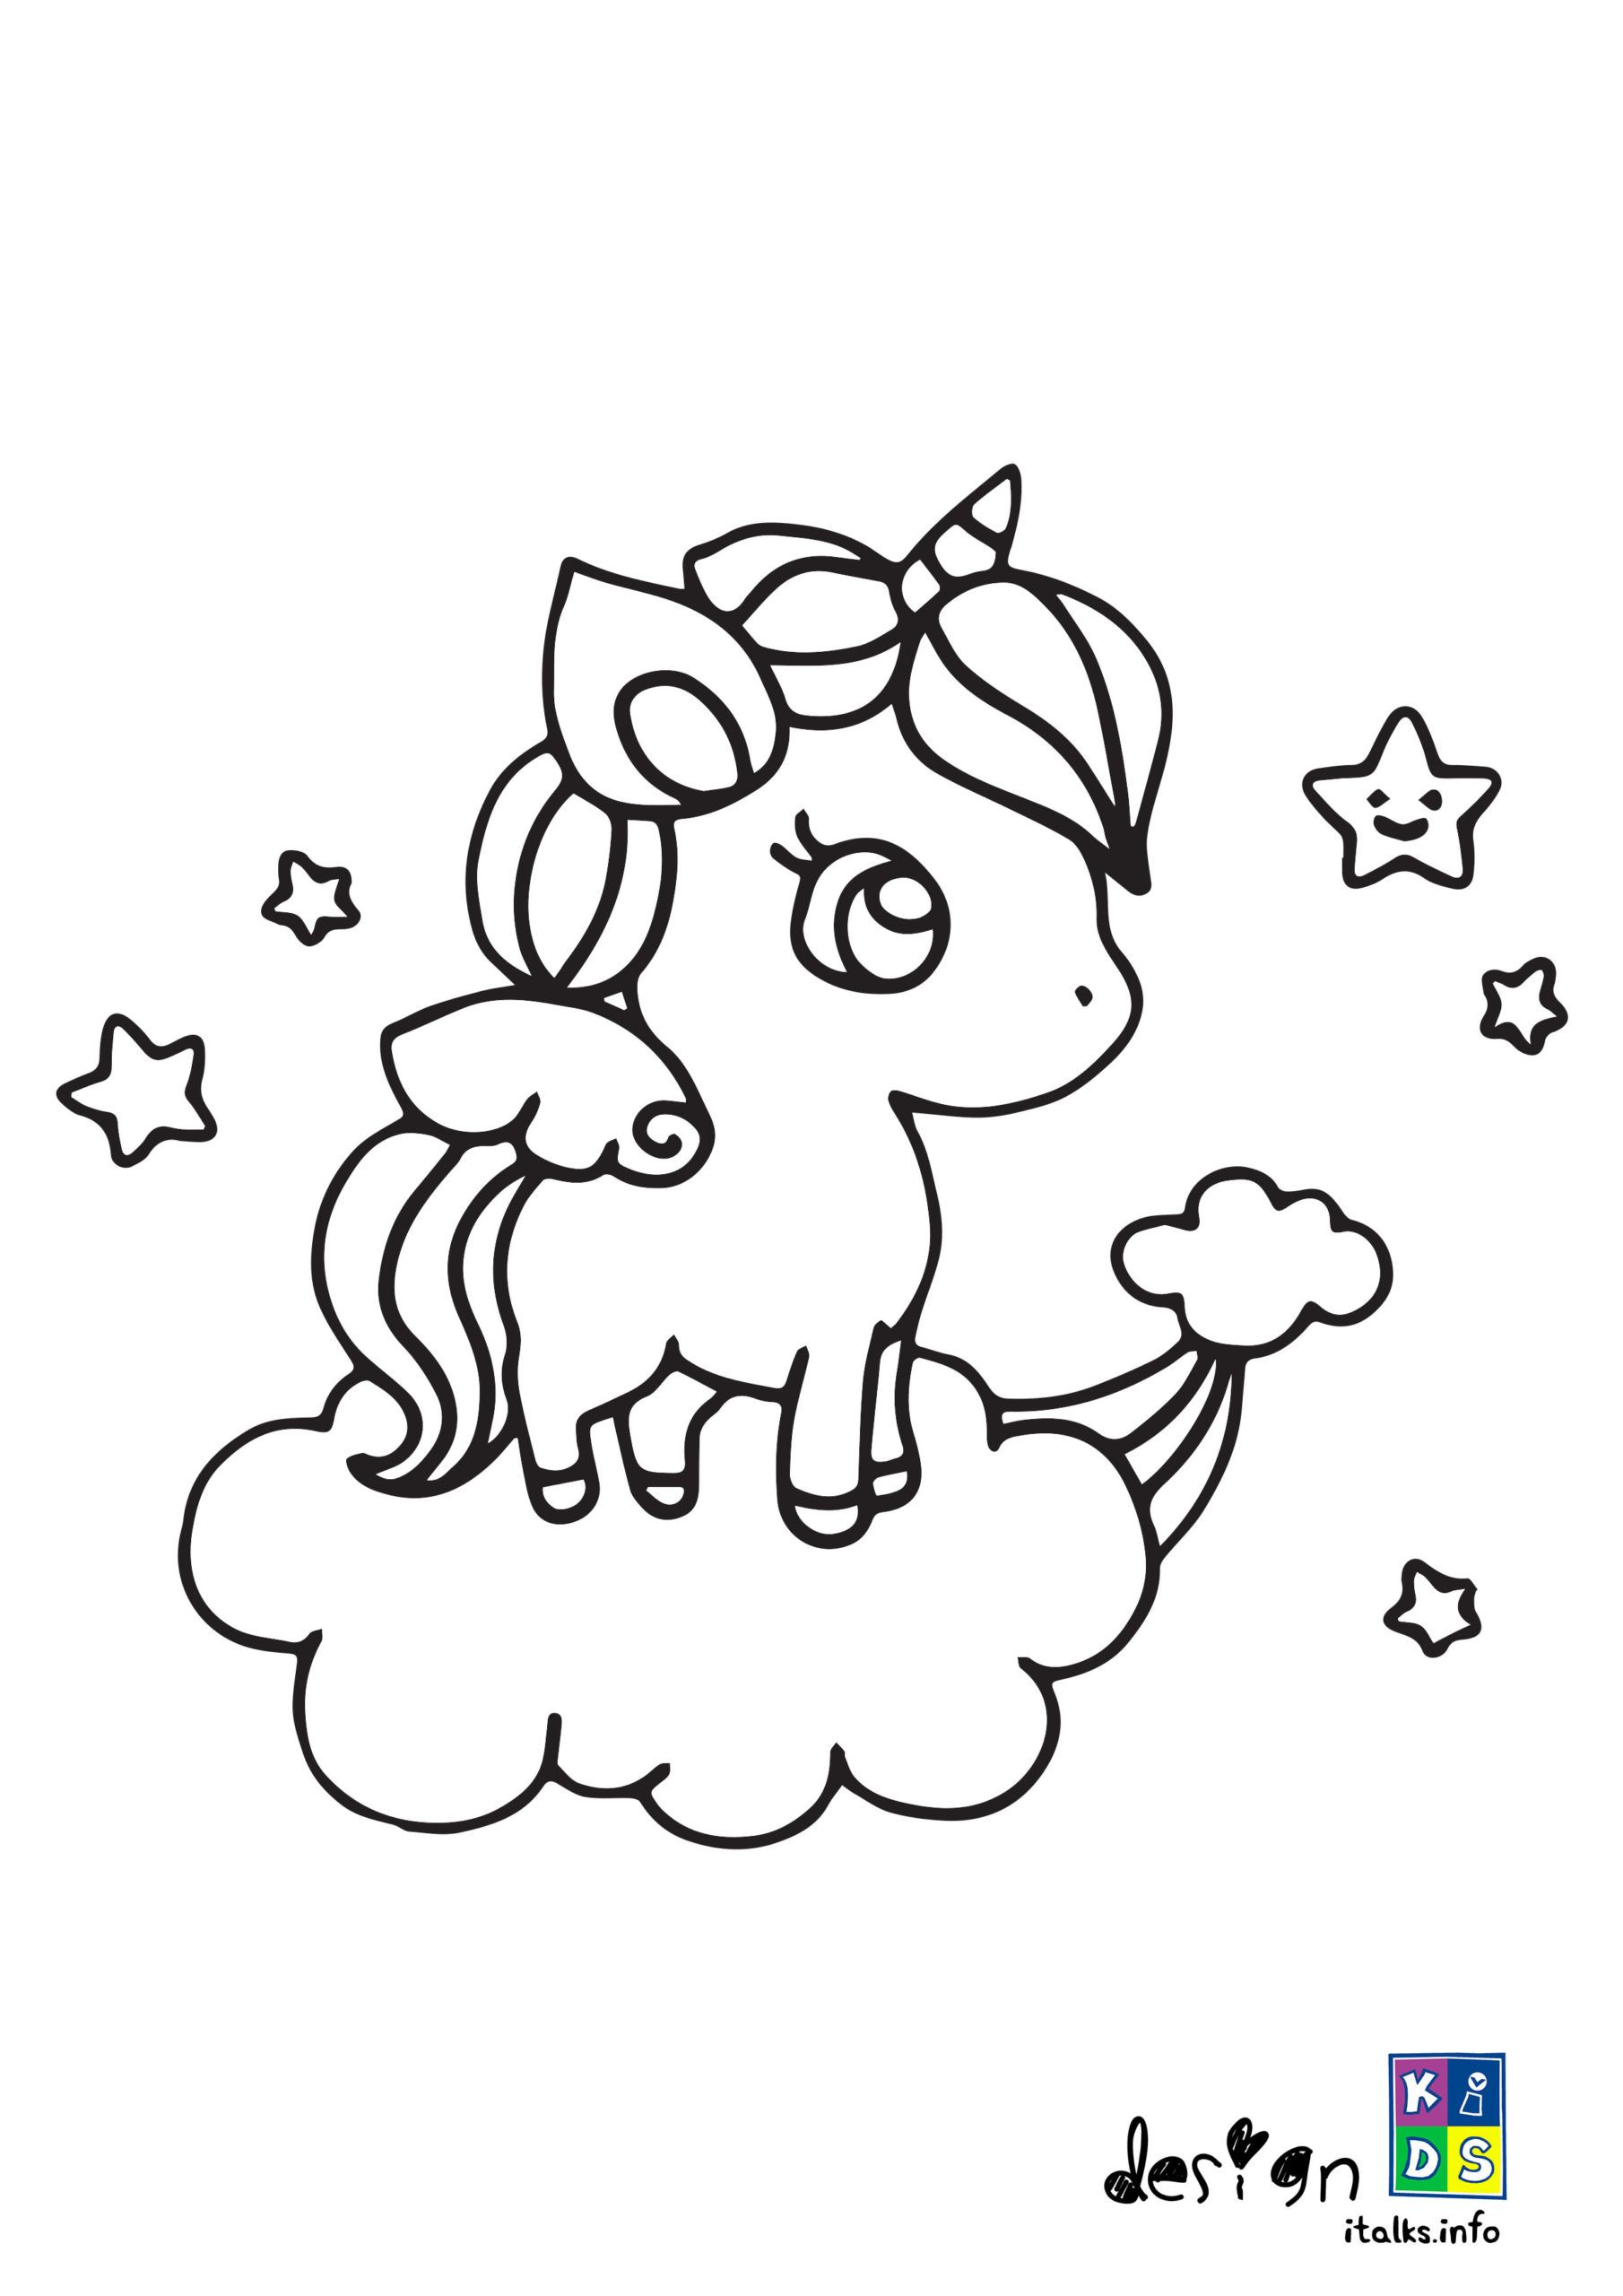 Kawaii Unicorn Coloring Page Designkids Unicorn Coloring Pages Kawaii Unicorn Coloring Pages